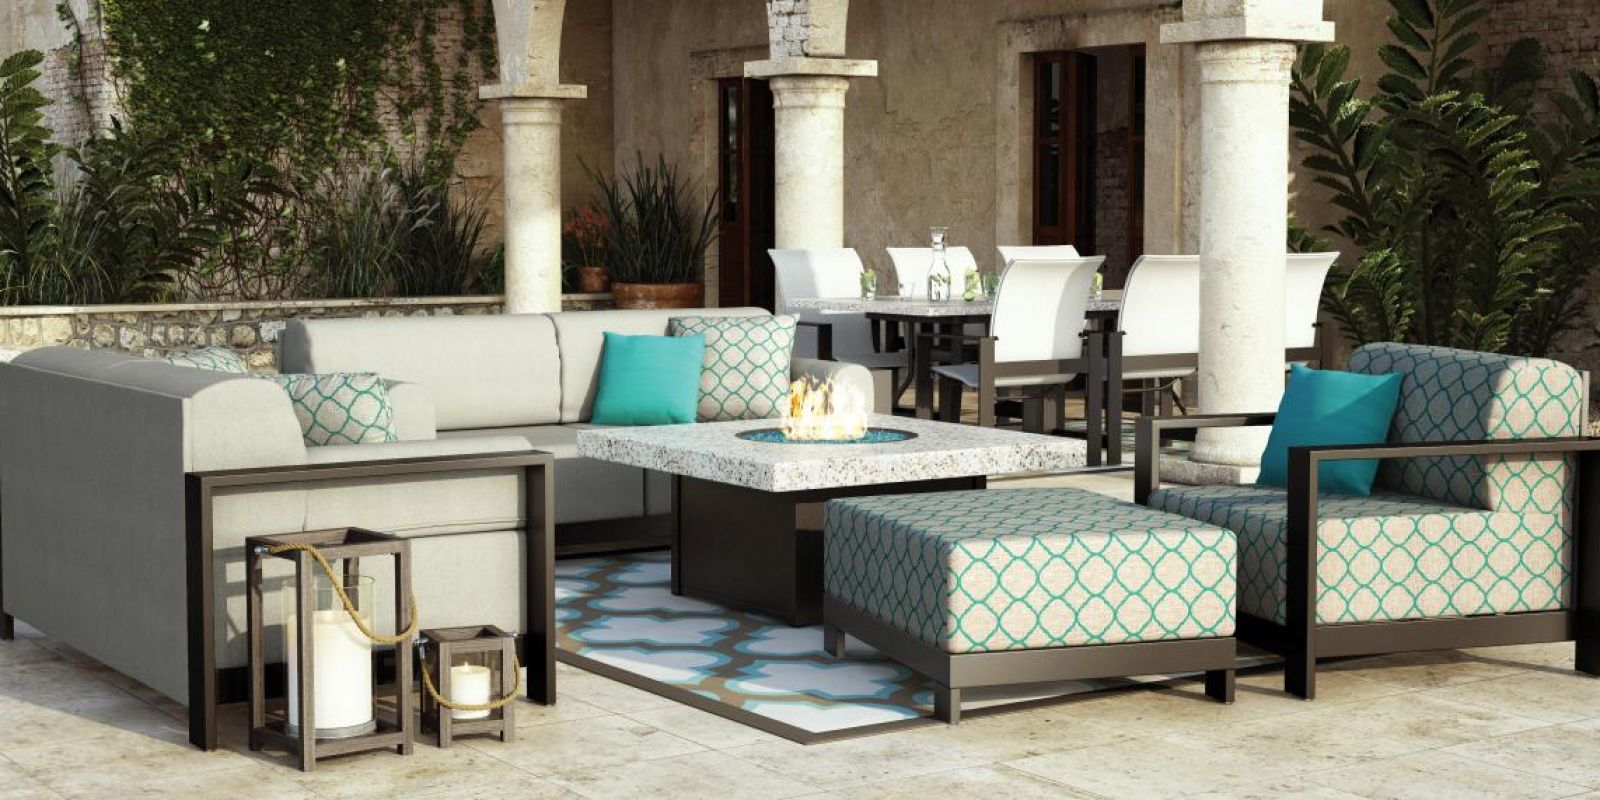 Outdoor Patio Design Specialist | American Casual Living on Casual Living Patio id=94088